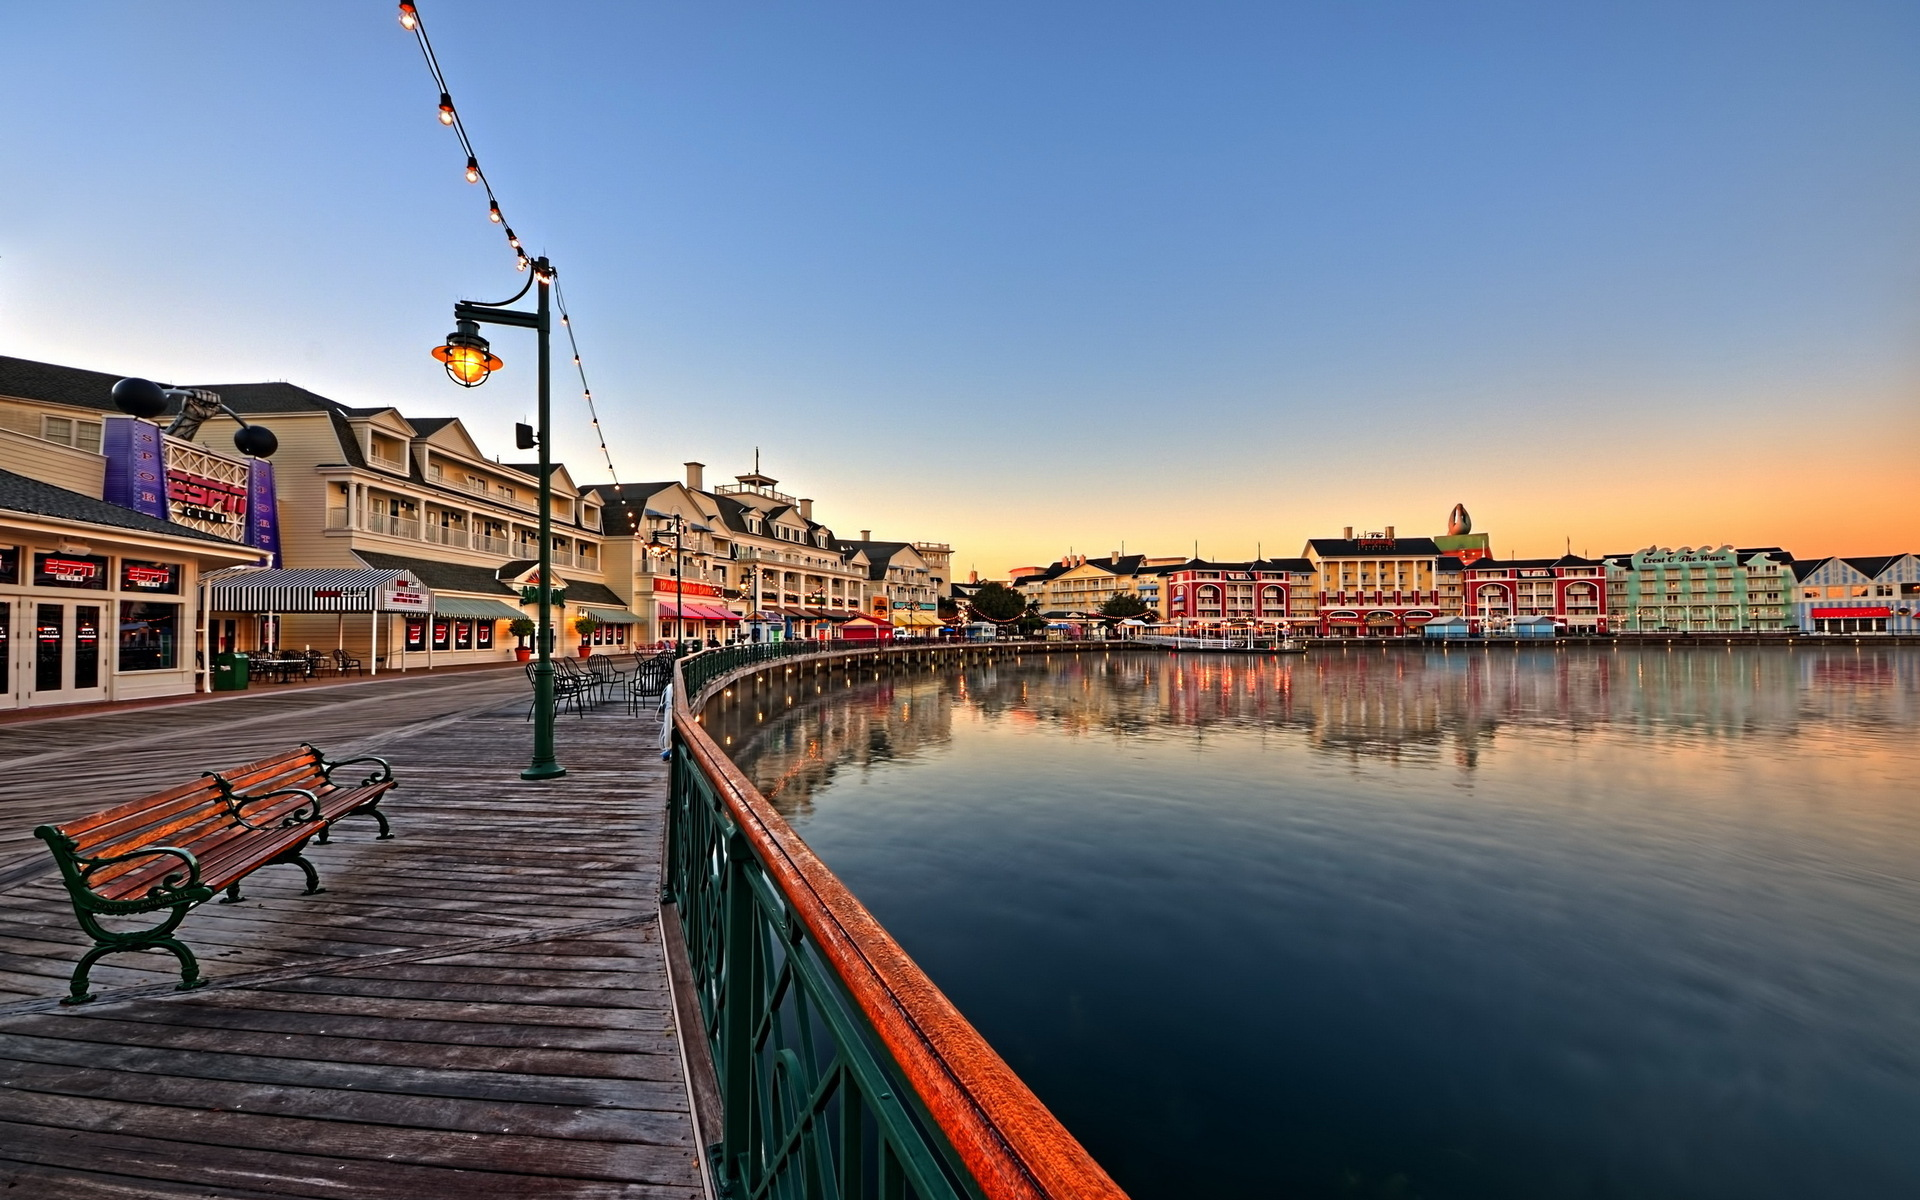 Disney S Boardwalk Epcot Resort Area Walt Disney World Resort Hd